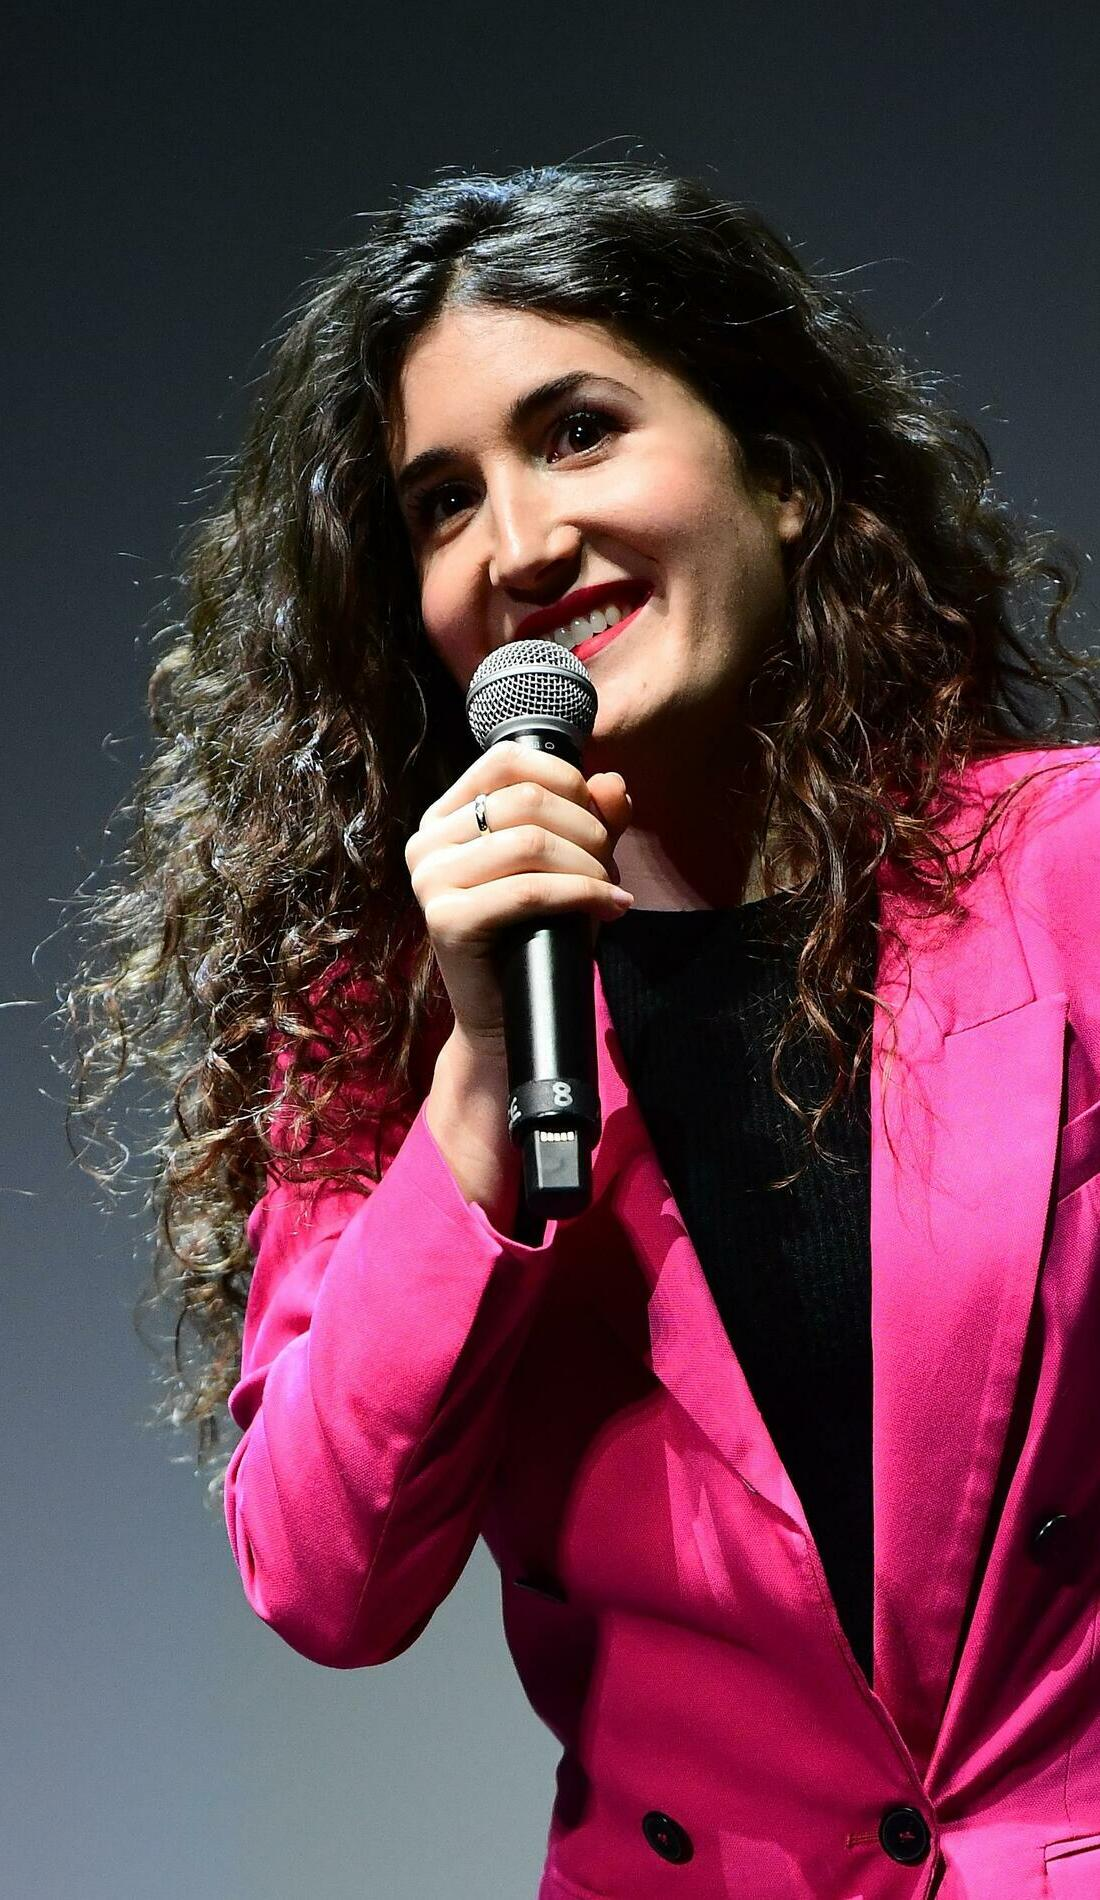 A Kate Berlant live event